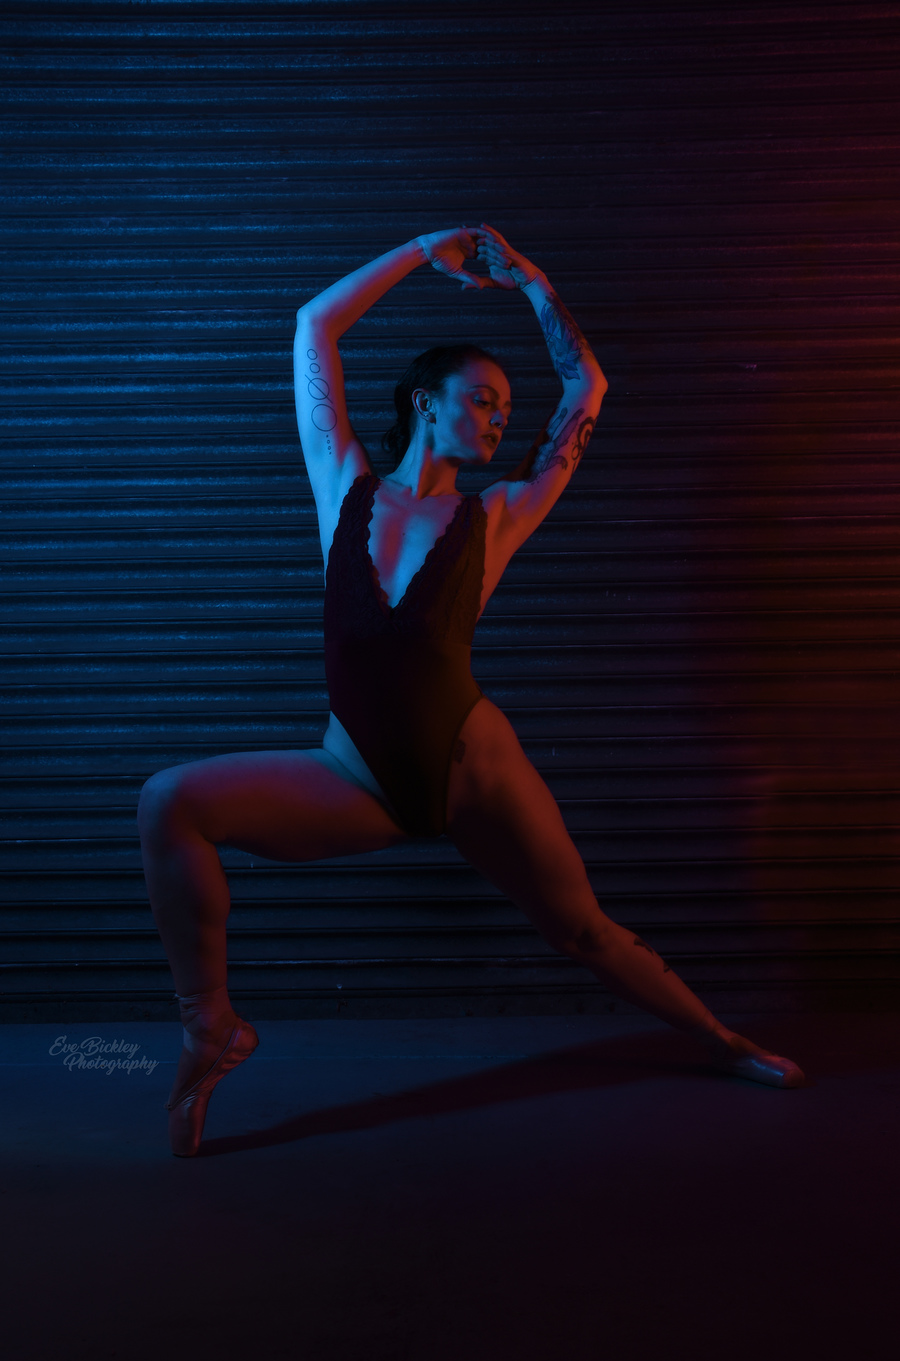 Ballet / Photography by On Film Photography Studio, Model Rachyy, Post processing by On Film Photography Studio, Taken at On Film Photography Studio / Uploaded 18th February 2019 @ 12:28 PM